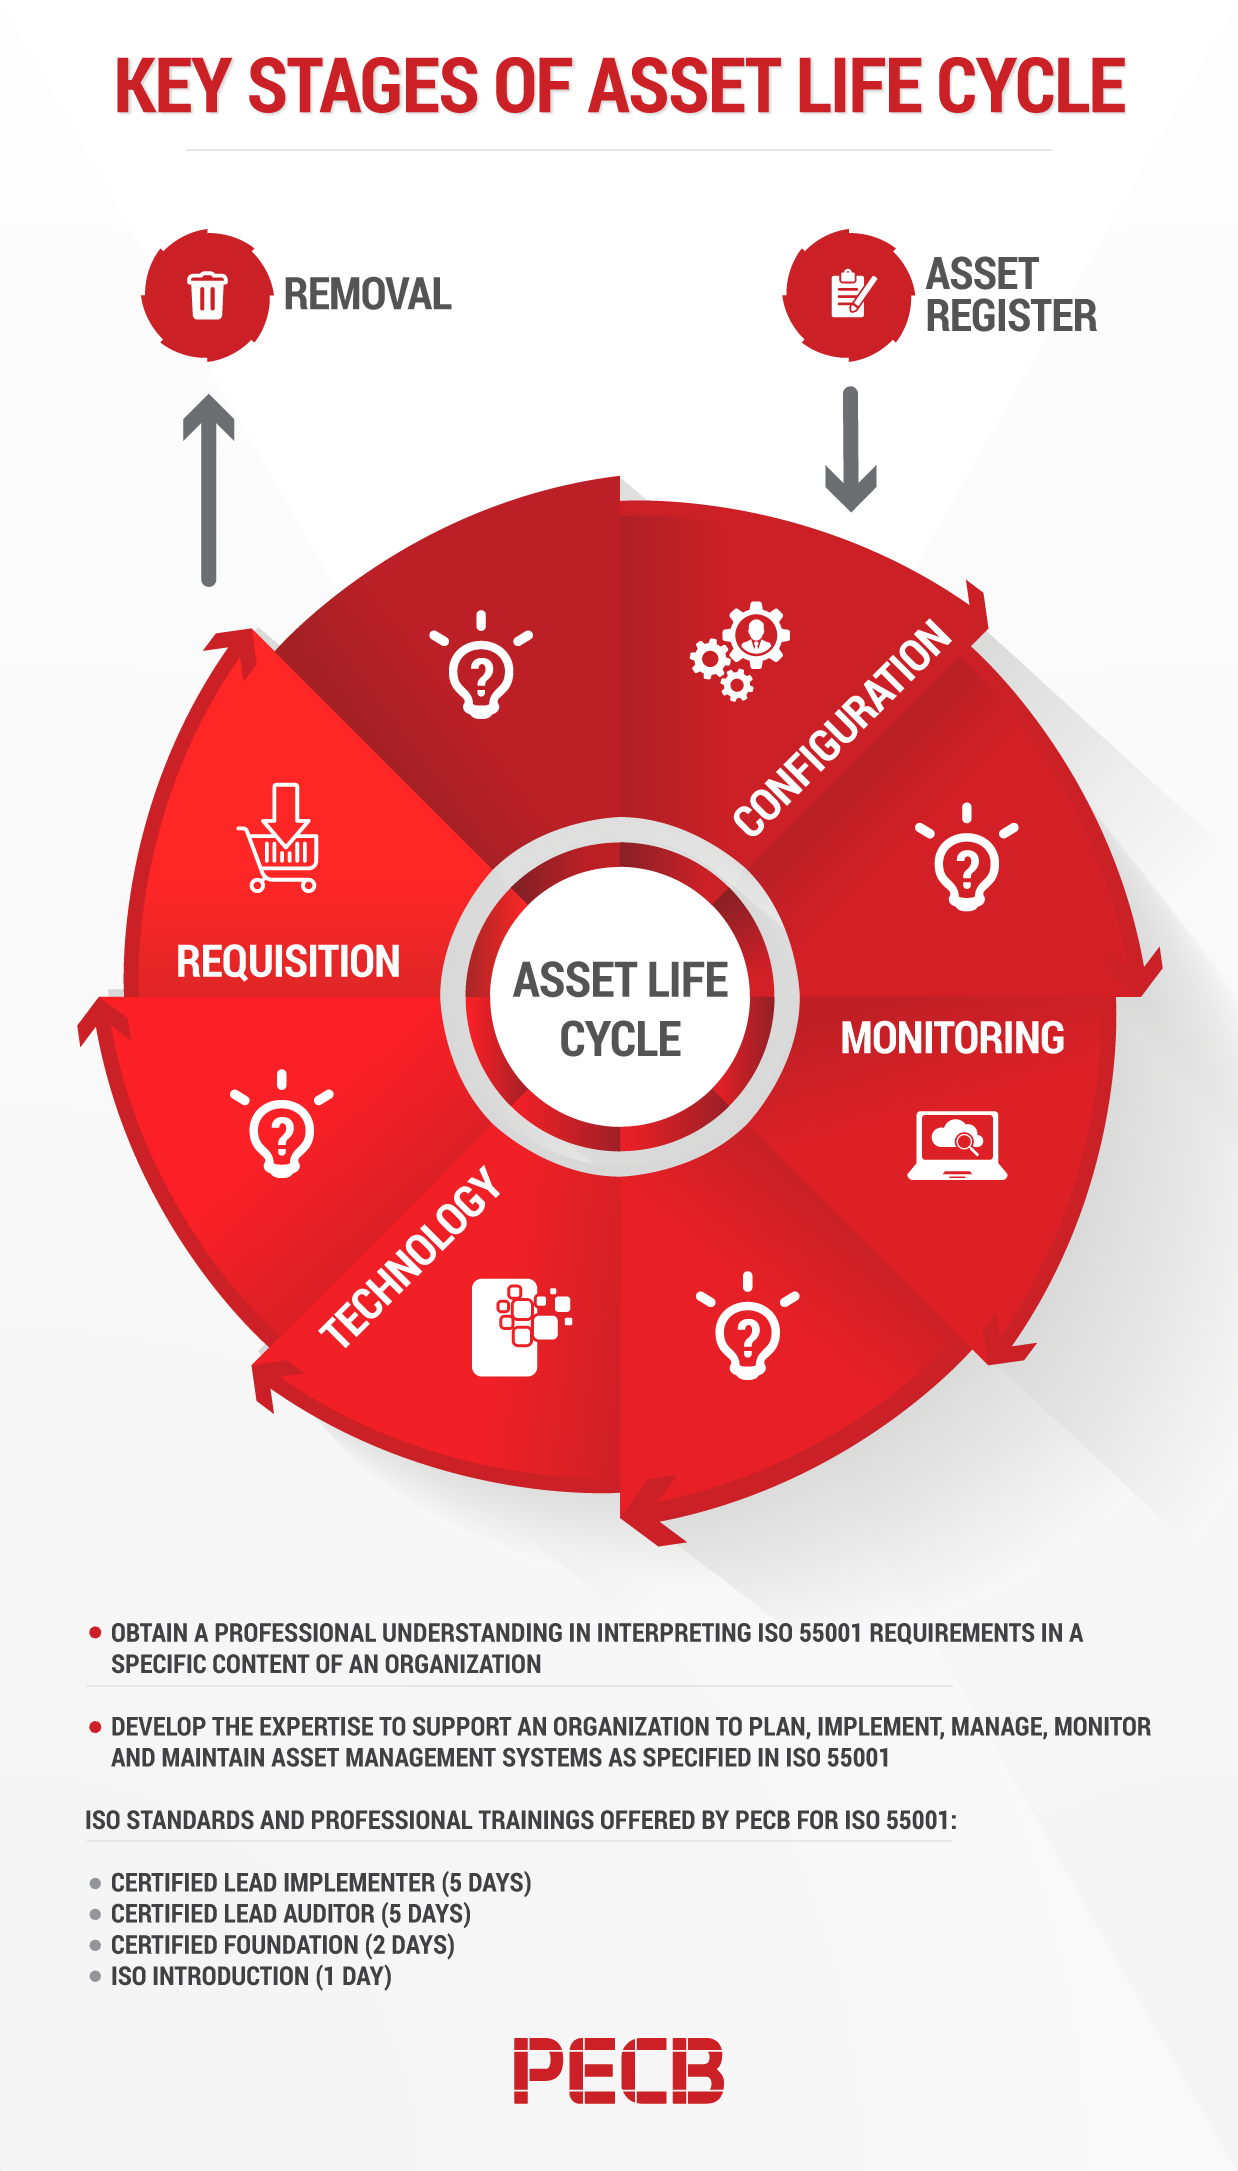 4 Key Stages of Asset Management Life Cycle | PECB